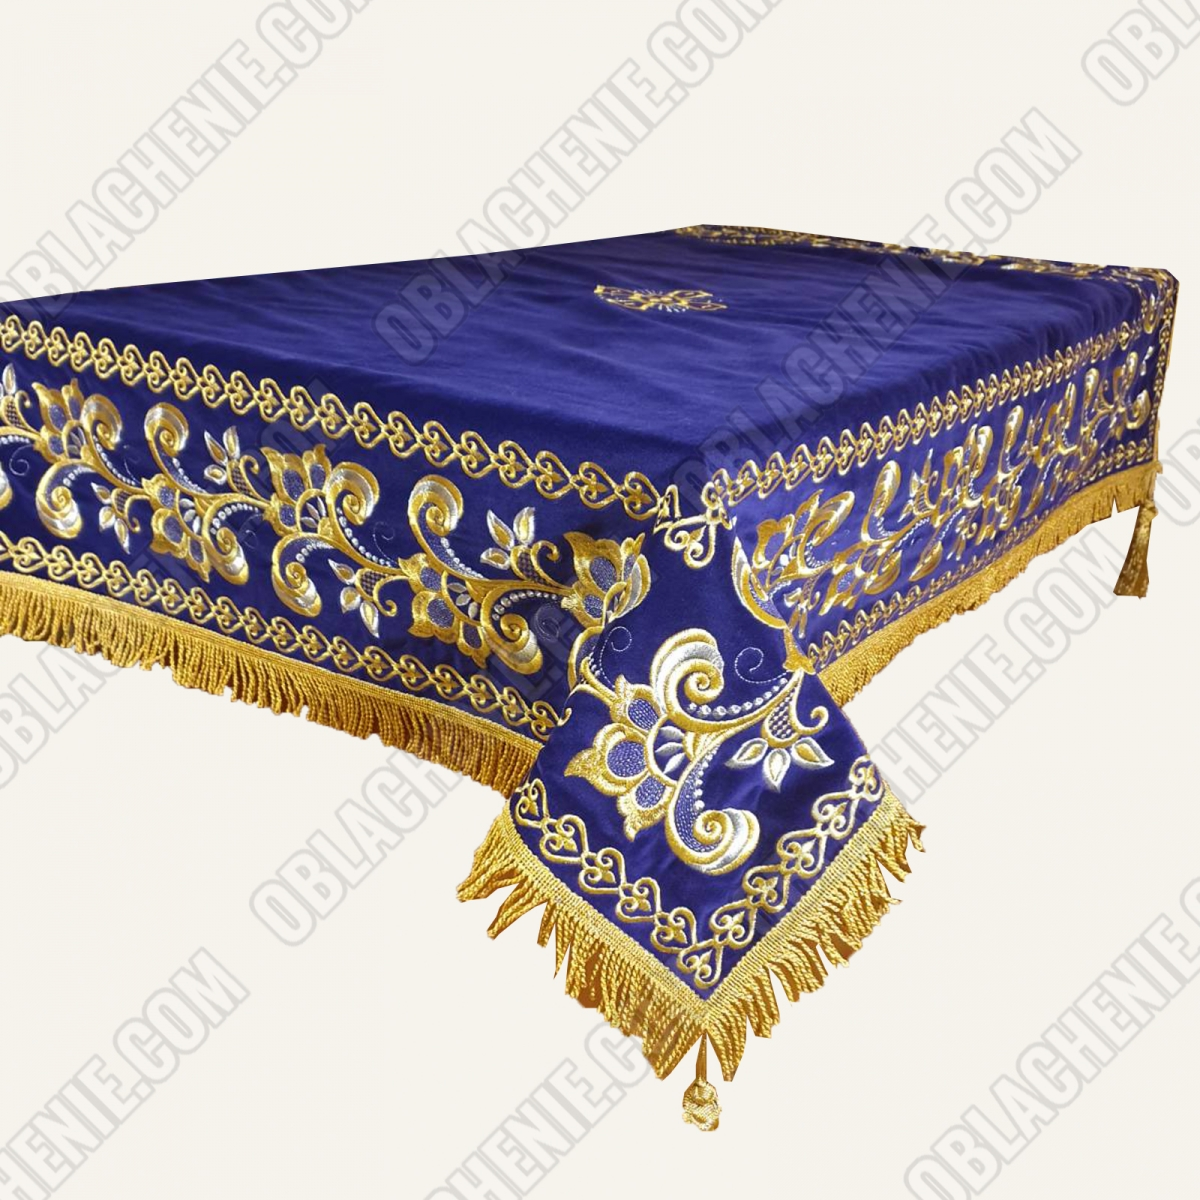 HOLY TABLE VESTMENTS 11373